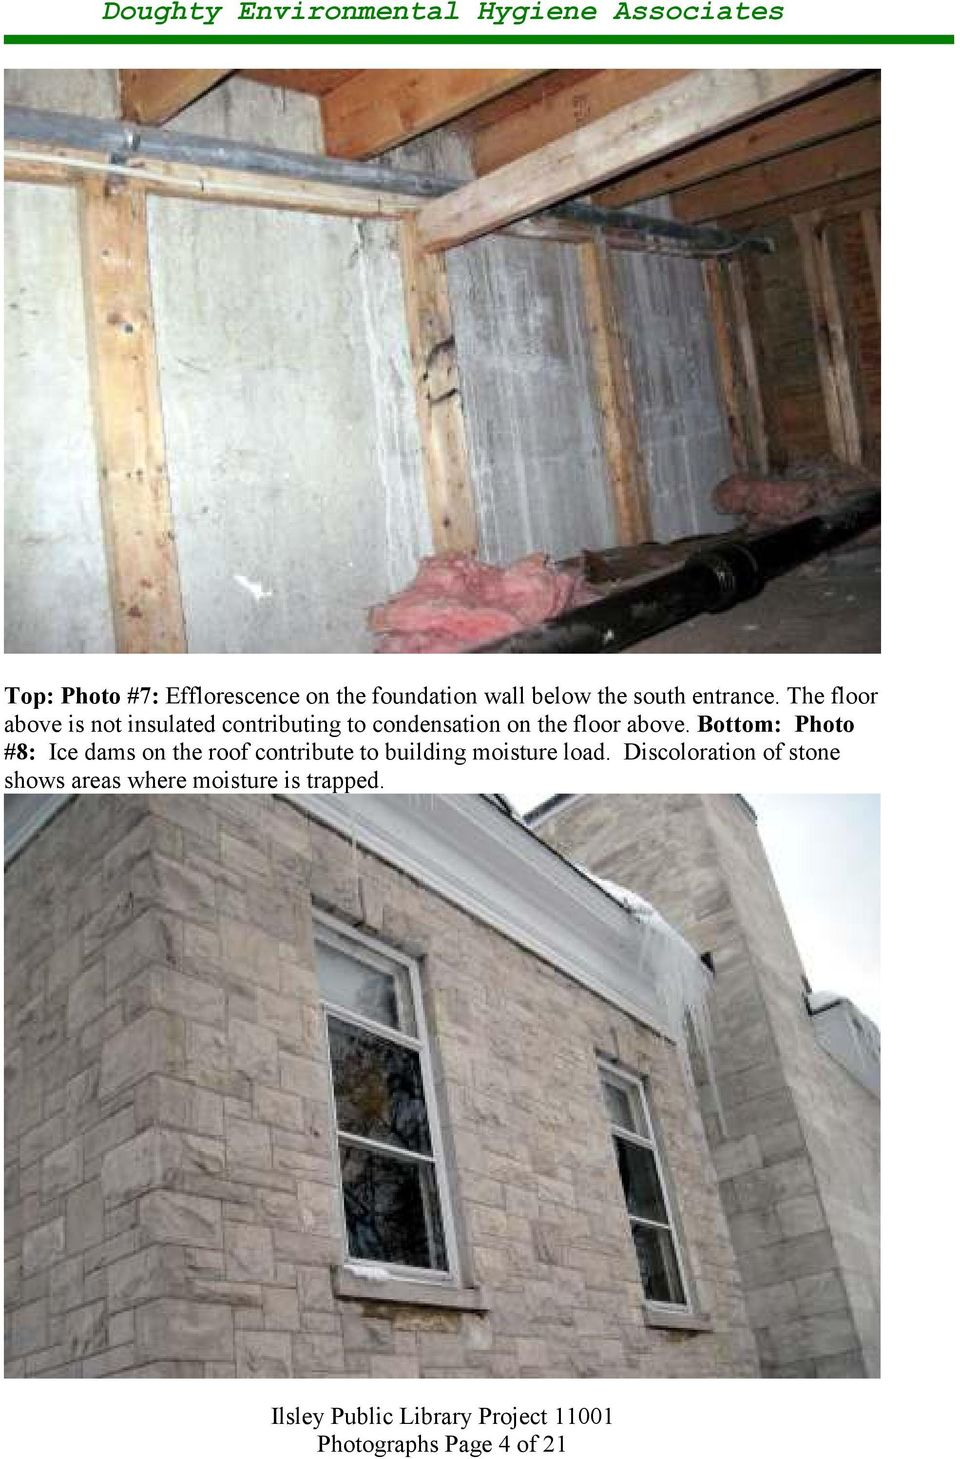 Bottom: Photo #8: Ice dams on the roof contribute to building moisture load.